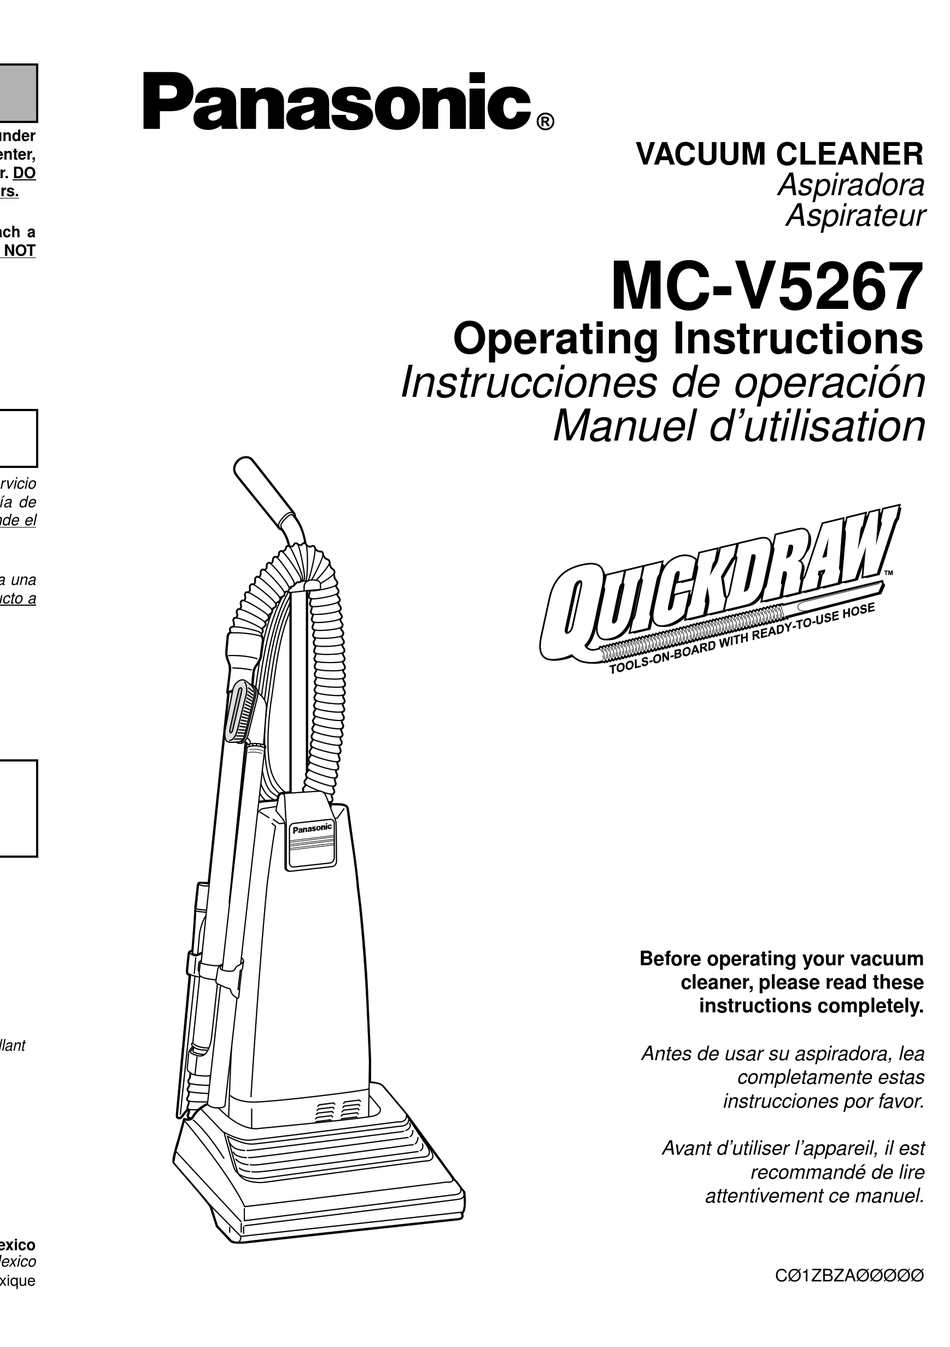 PANASONIC MC-V5267 OPERATING INSTRUCTIONS MANUAL Pdf